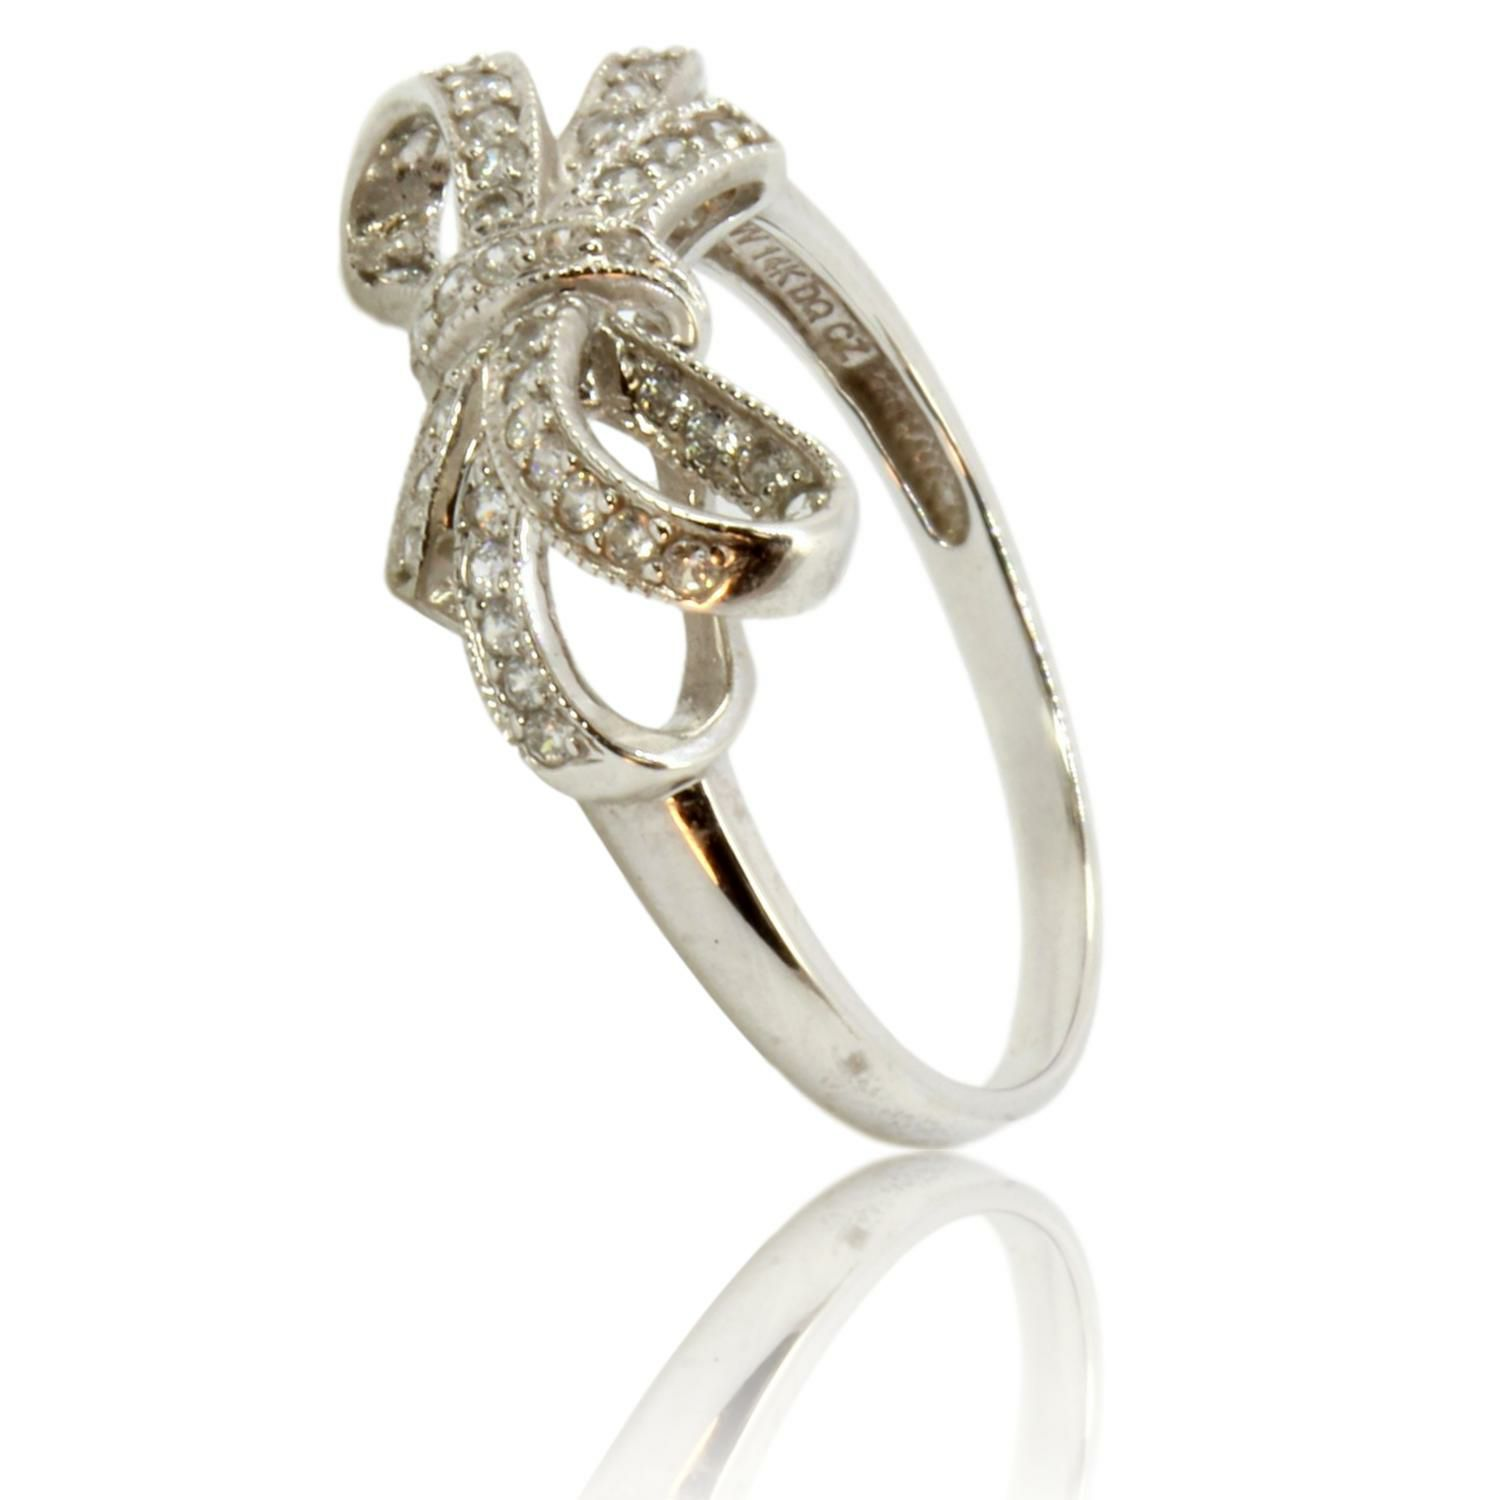 14K-White-Gold-.80-ctw-CZ-Domionique-Bow-Tie-Ring_87410A.jpg